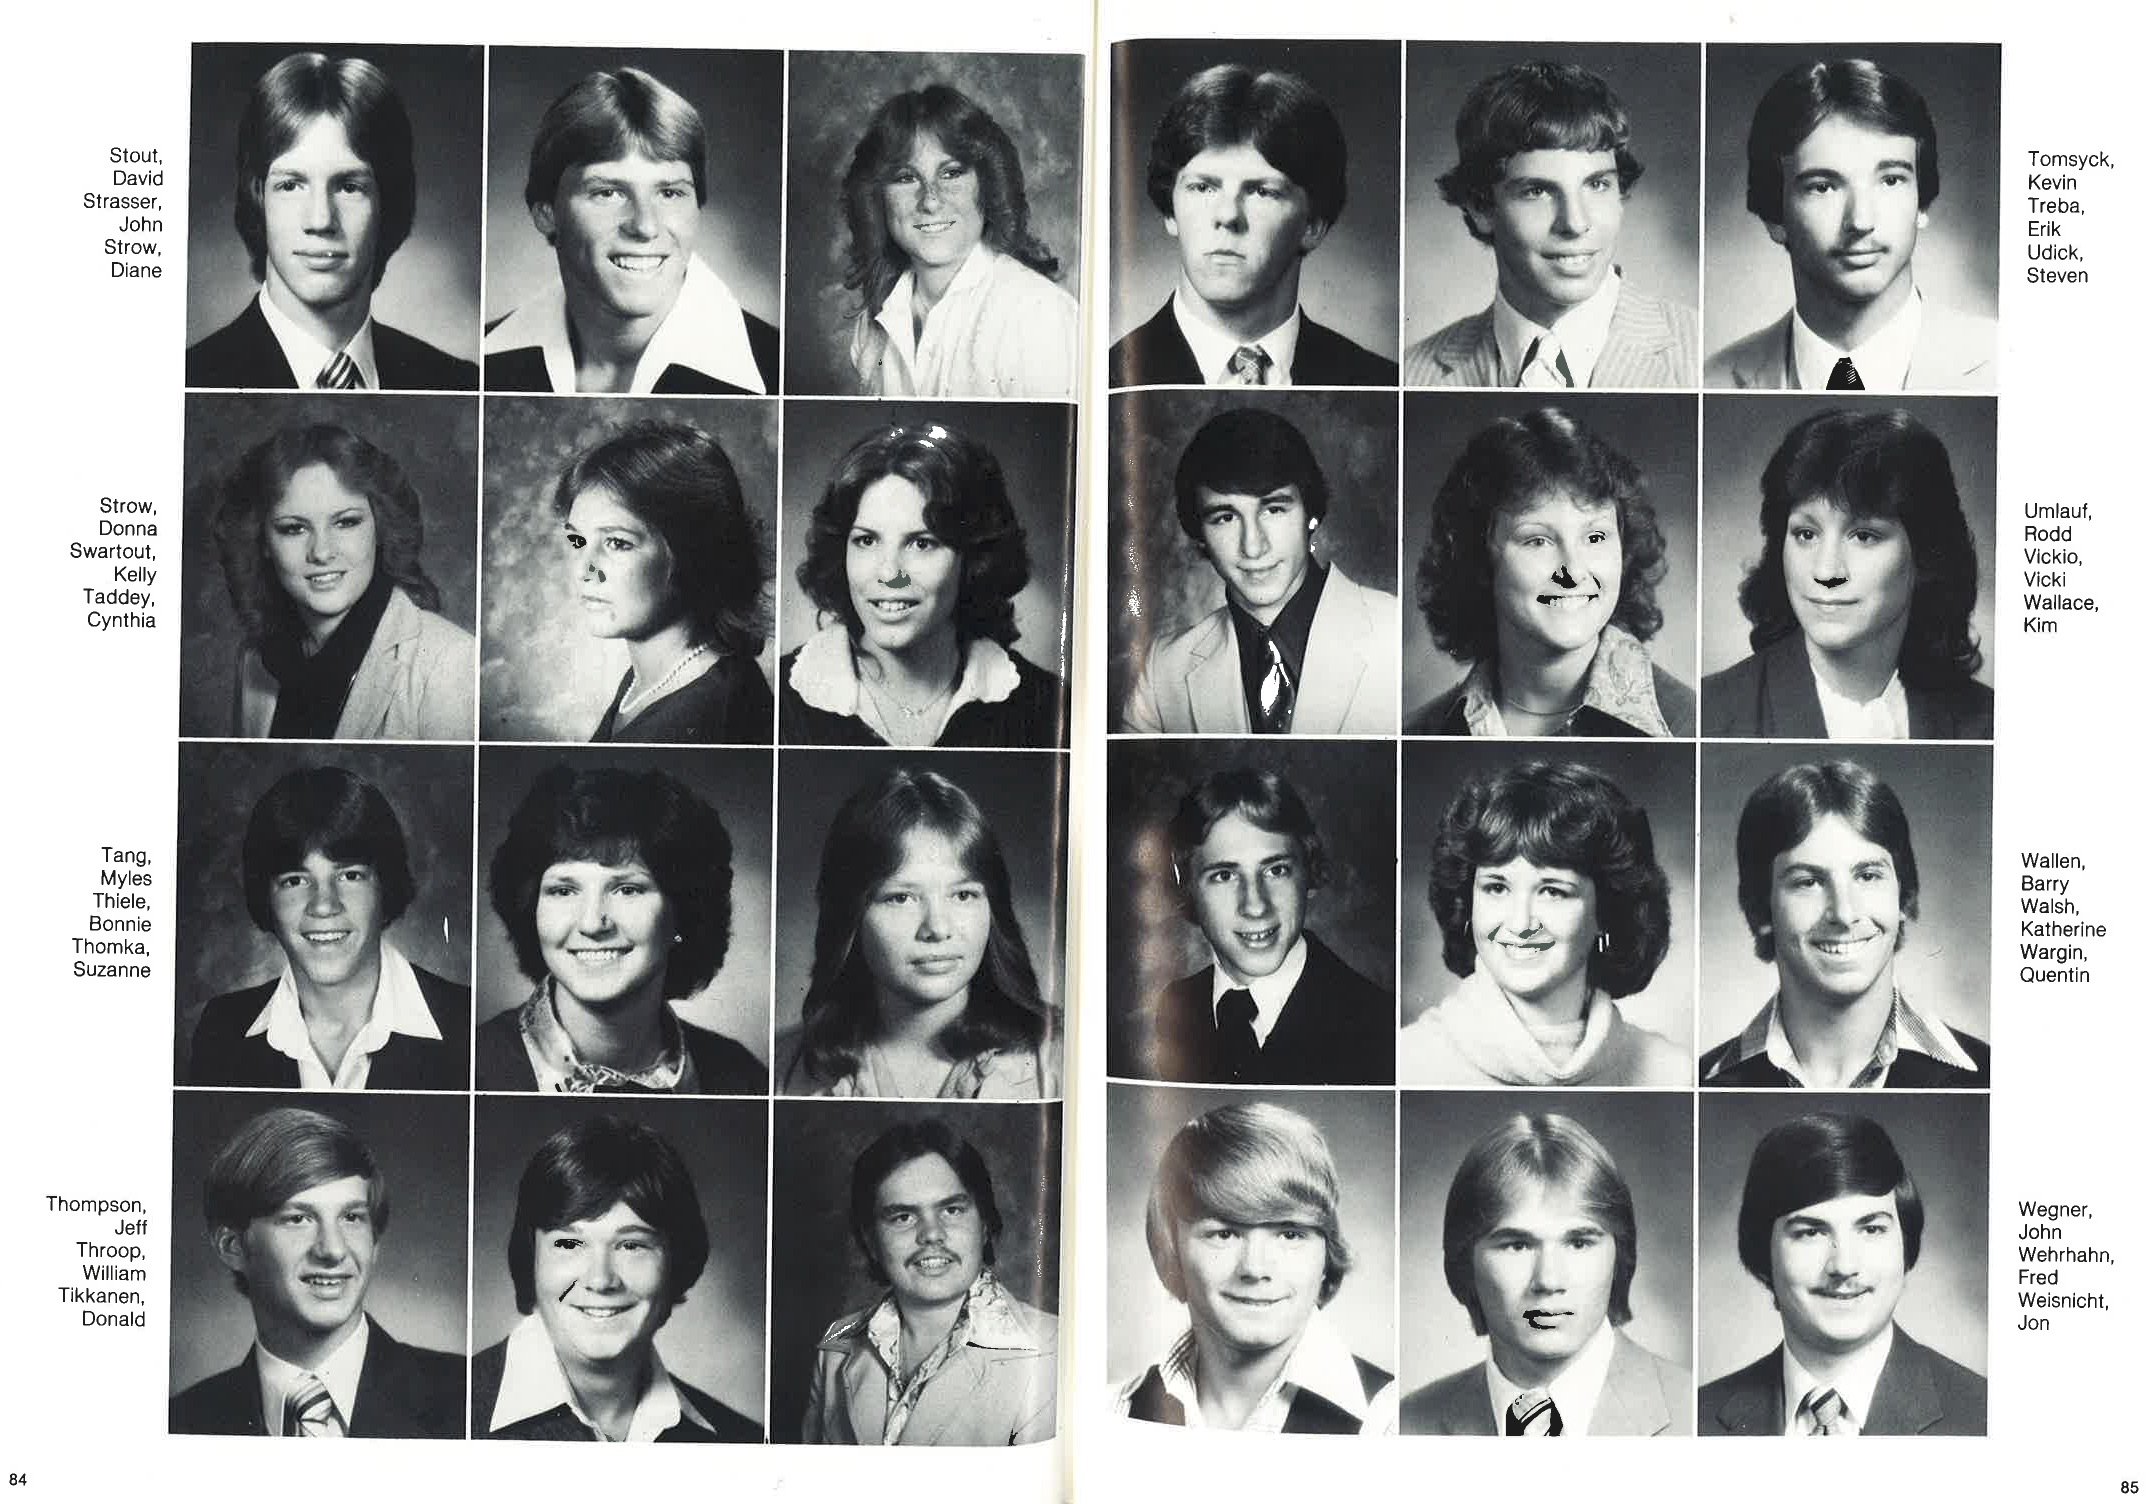 1981_Yearbook_84.jpg